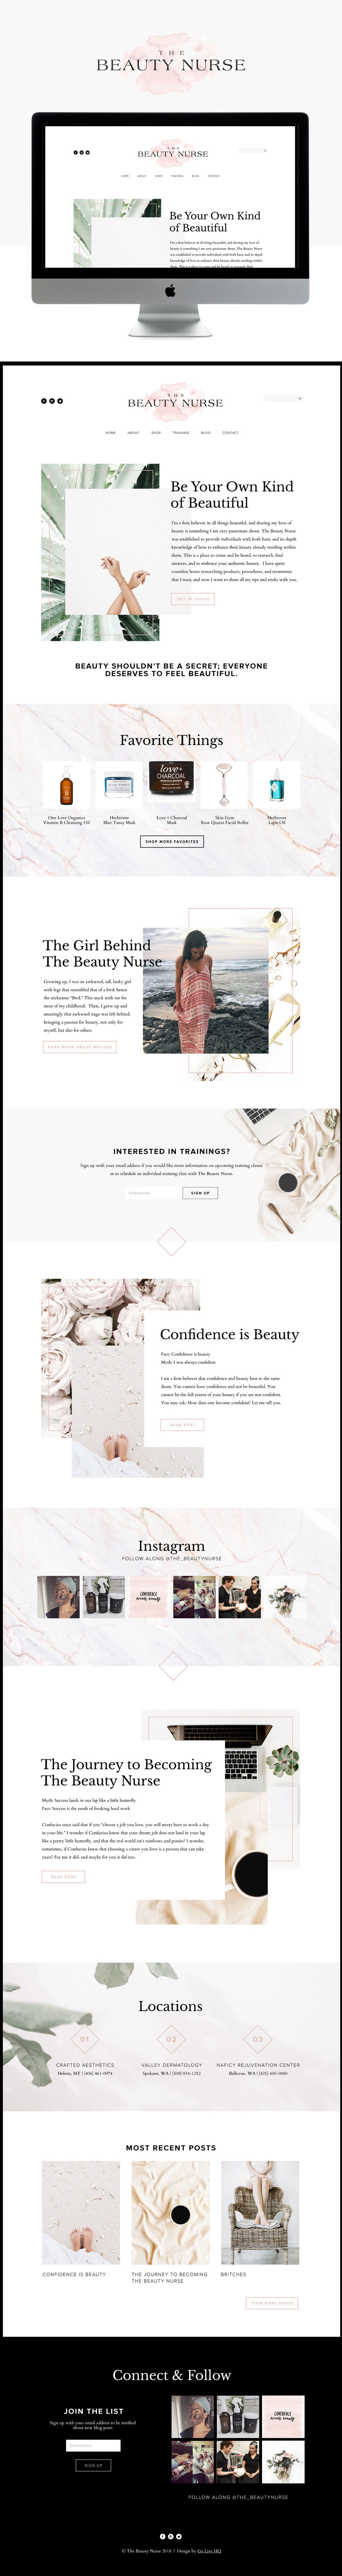 Creative & Feminine Website Design for Beauty Nurse | Website Design by Go Live HQ